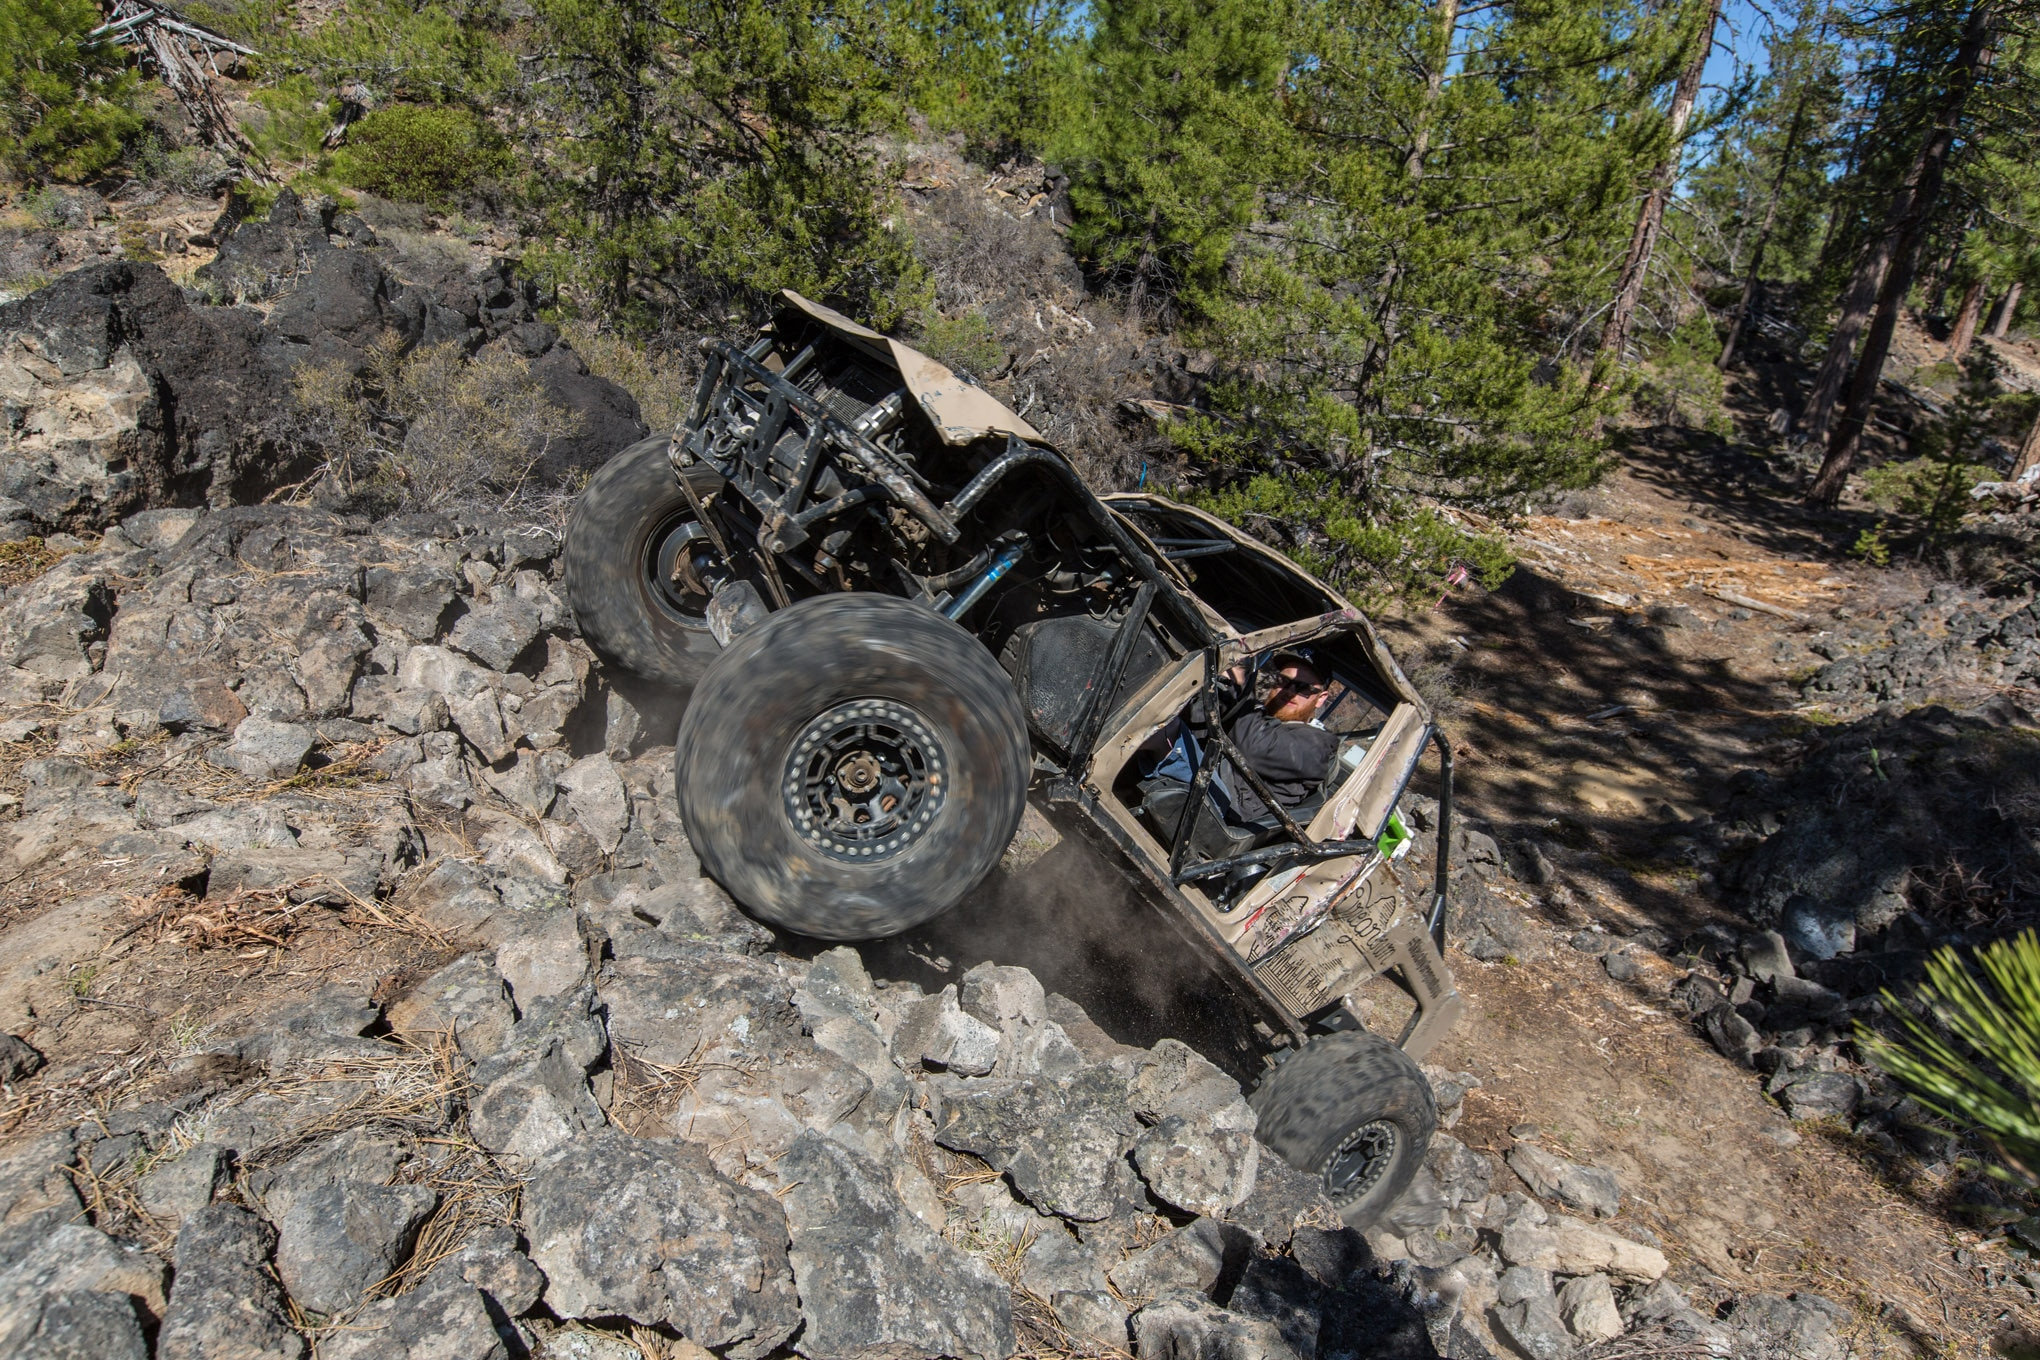 Cody Reems spent much of the day on the rev limiter, but he didn't scatter any parts in his Toyota. The factory Toyota components are legendary for their strength, so Cody didn't have to add much more than some tube and lockers to make it up any climb at Rim Butte.